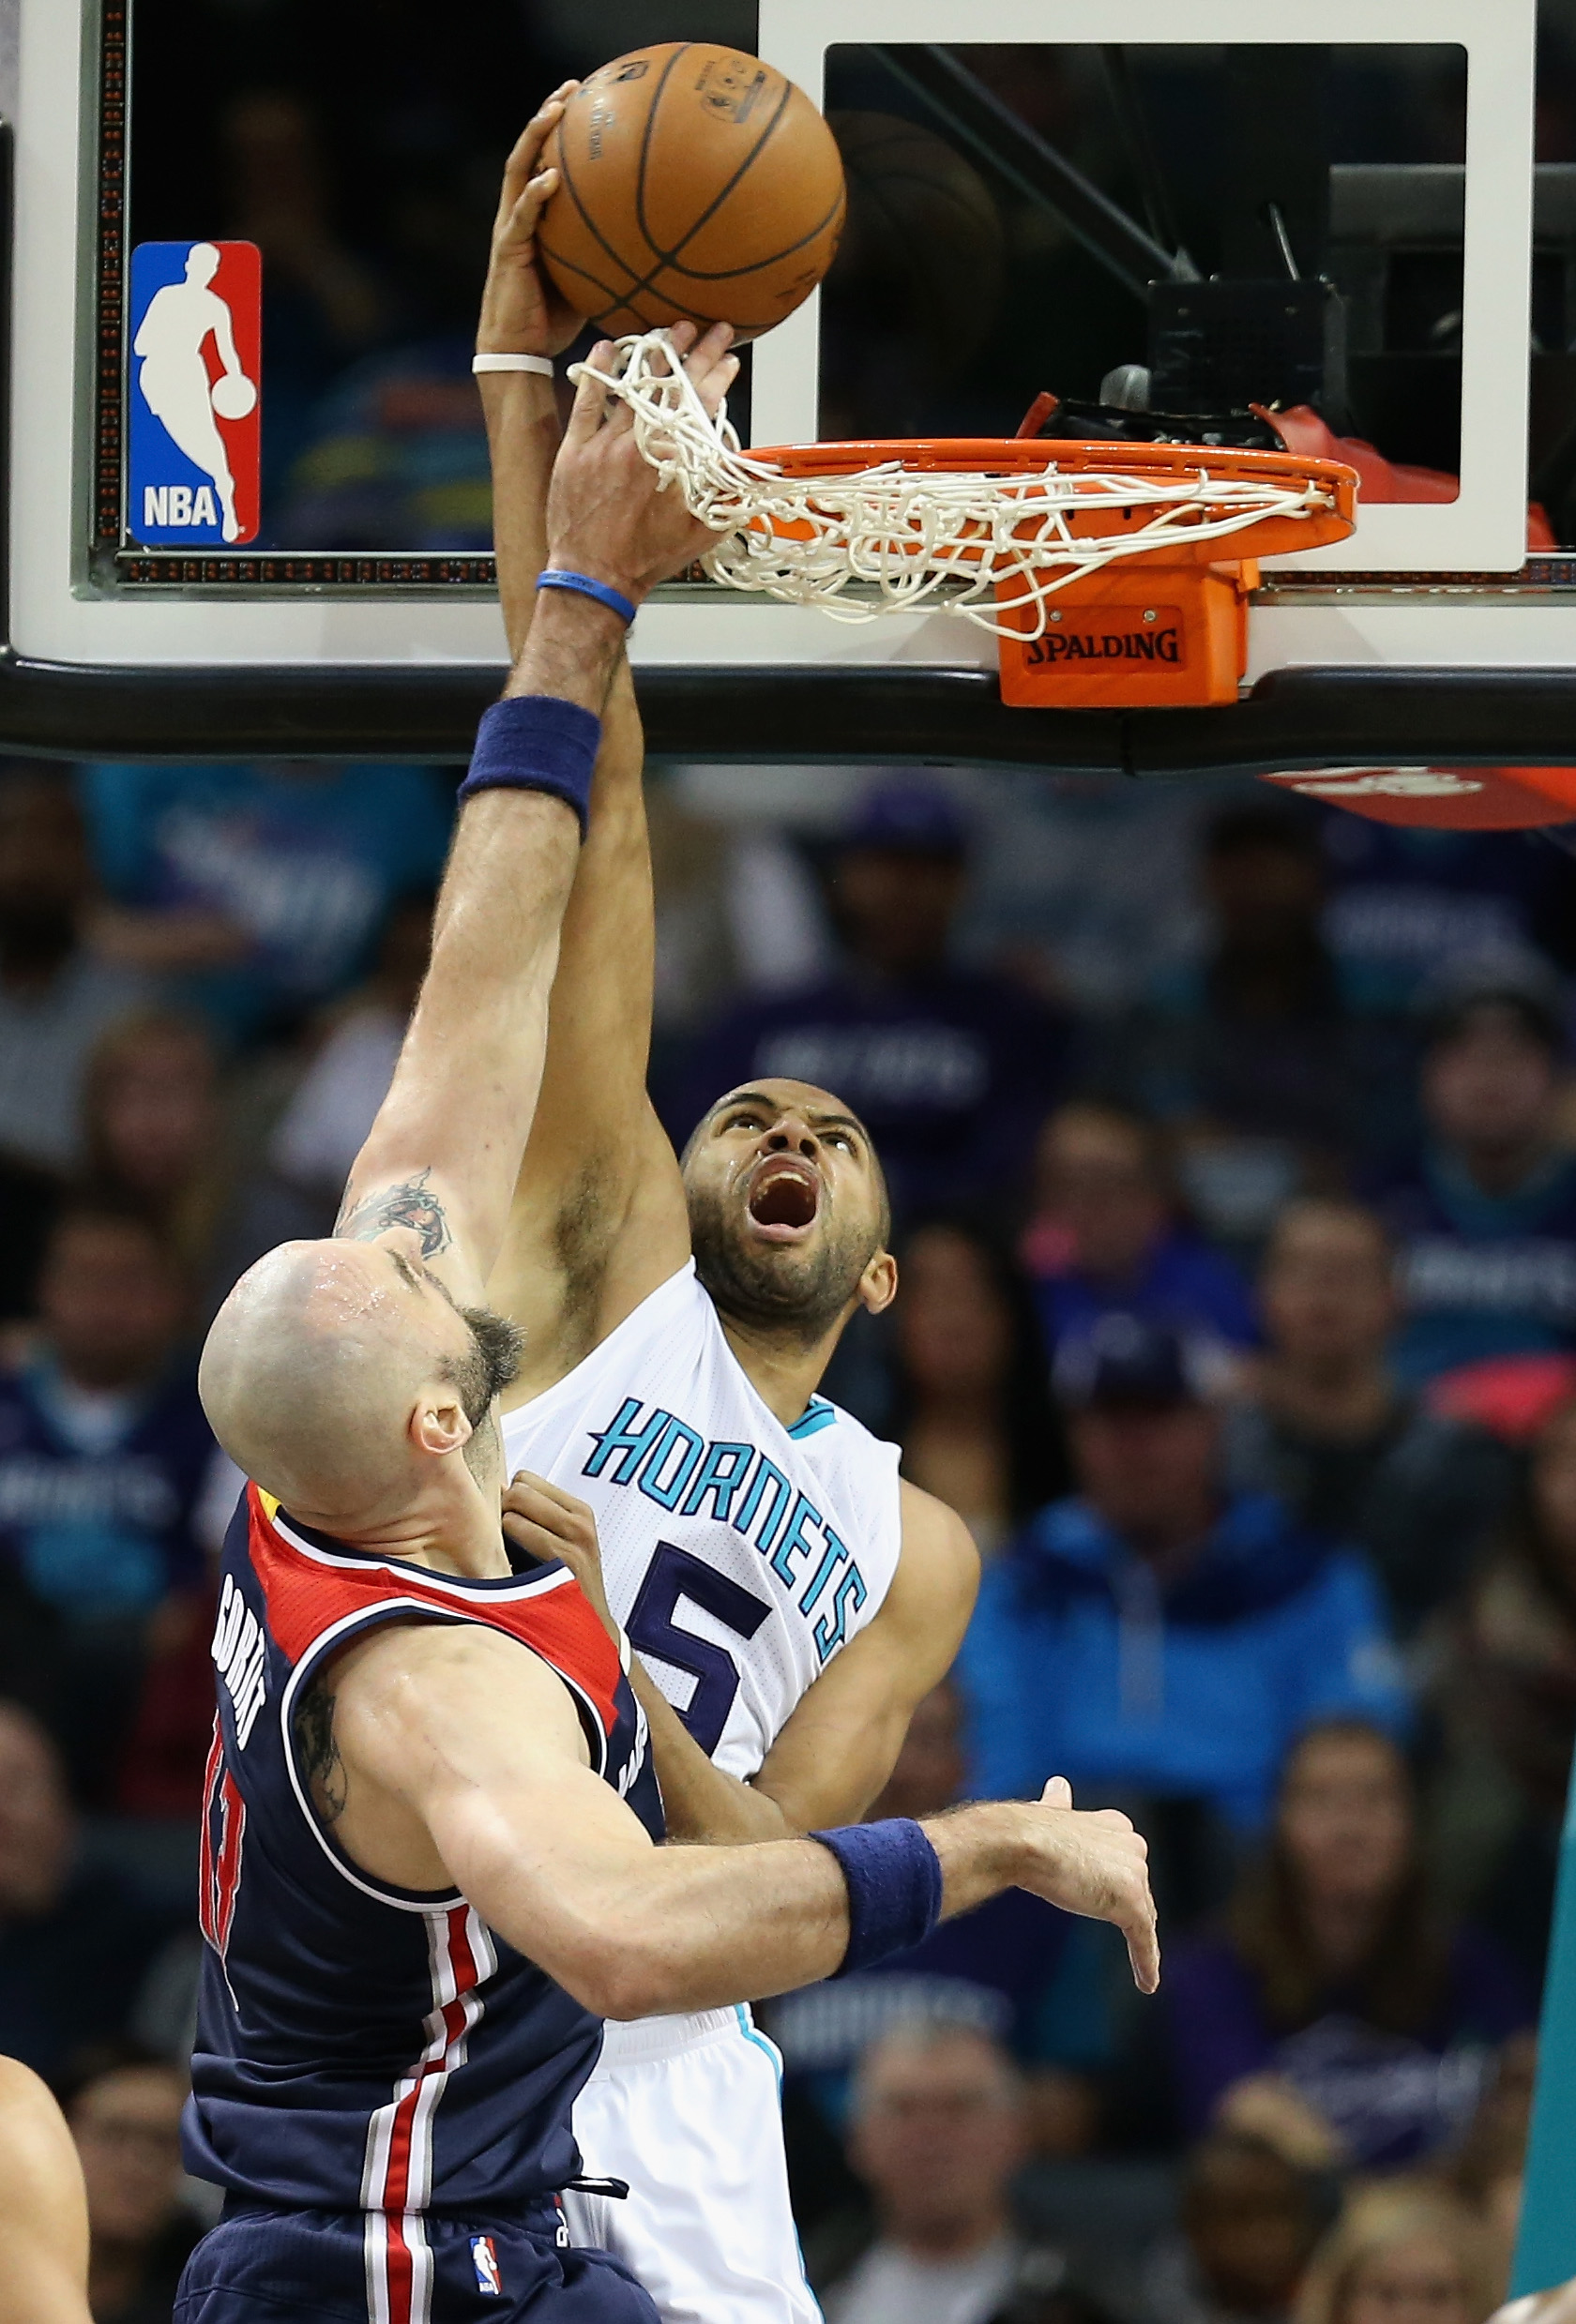 CHARLOTTE, NC - NOVEMBER 25:  Nicolas Batum #5 of the Charlotte Hornets drives to the basket against Marcin Gortat #13 of the Washington Wizards during their game at Time Warner Cable Arena on November 25, 2015 in Charlotte, North Carolina.  NBA - (Photo